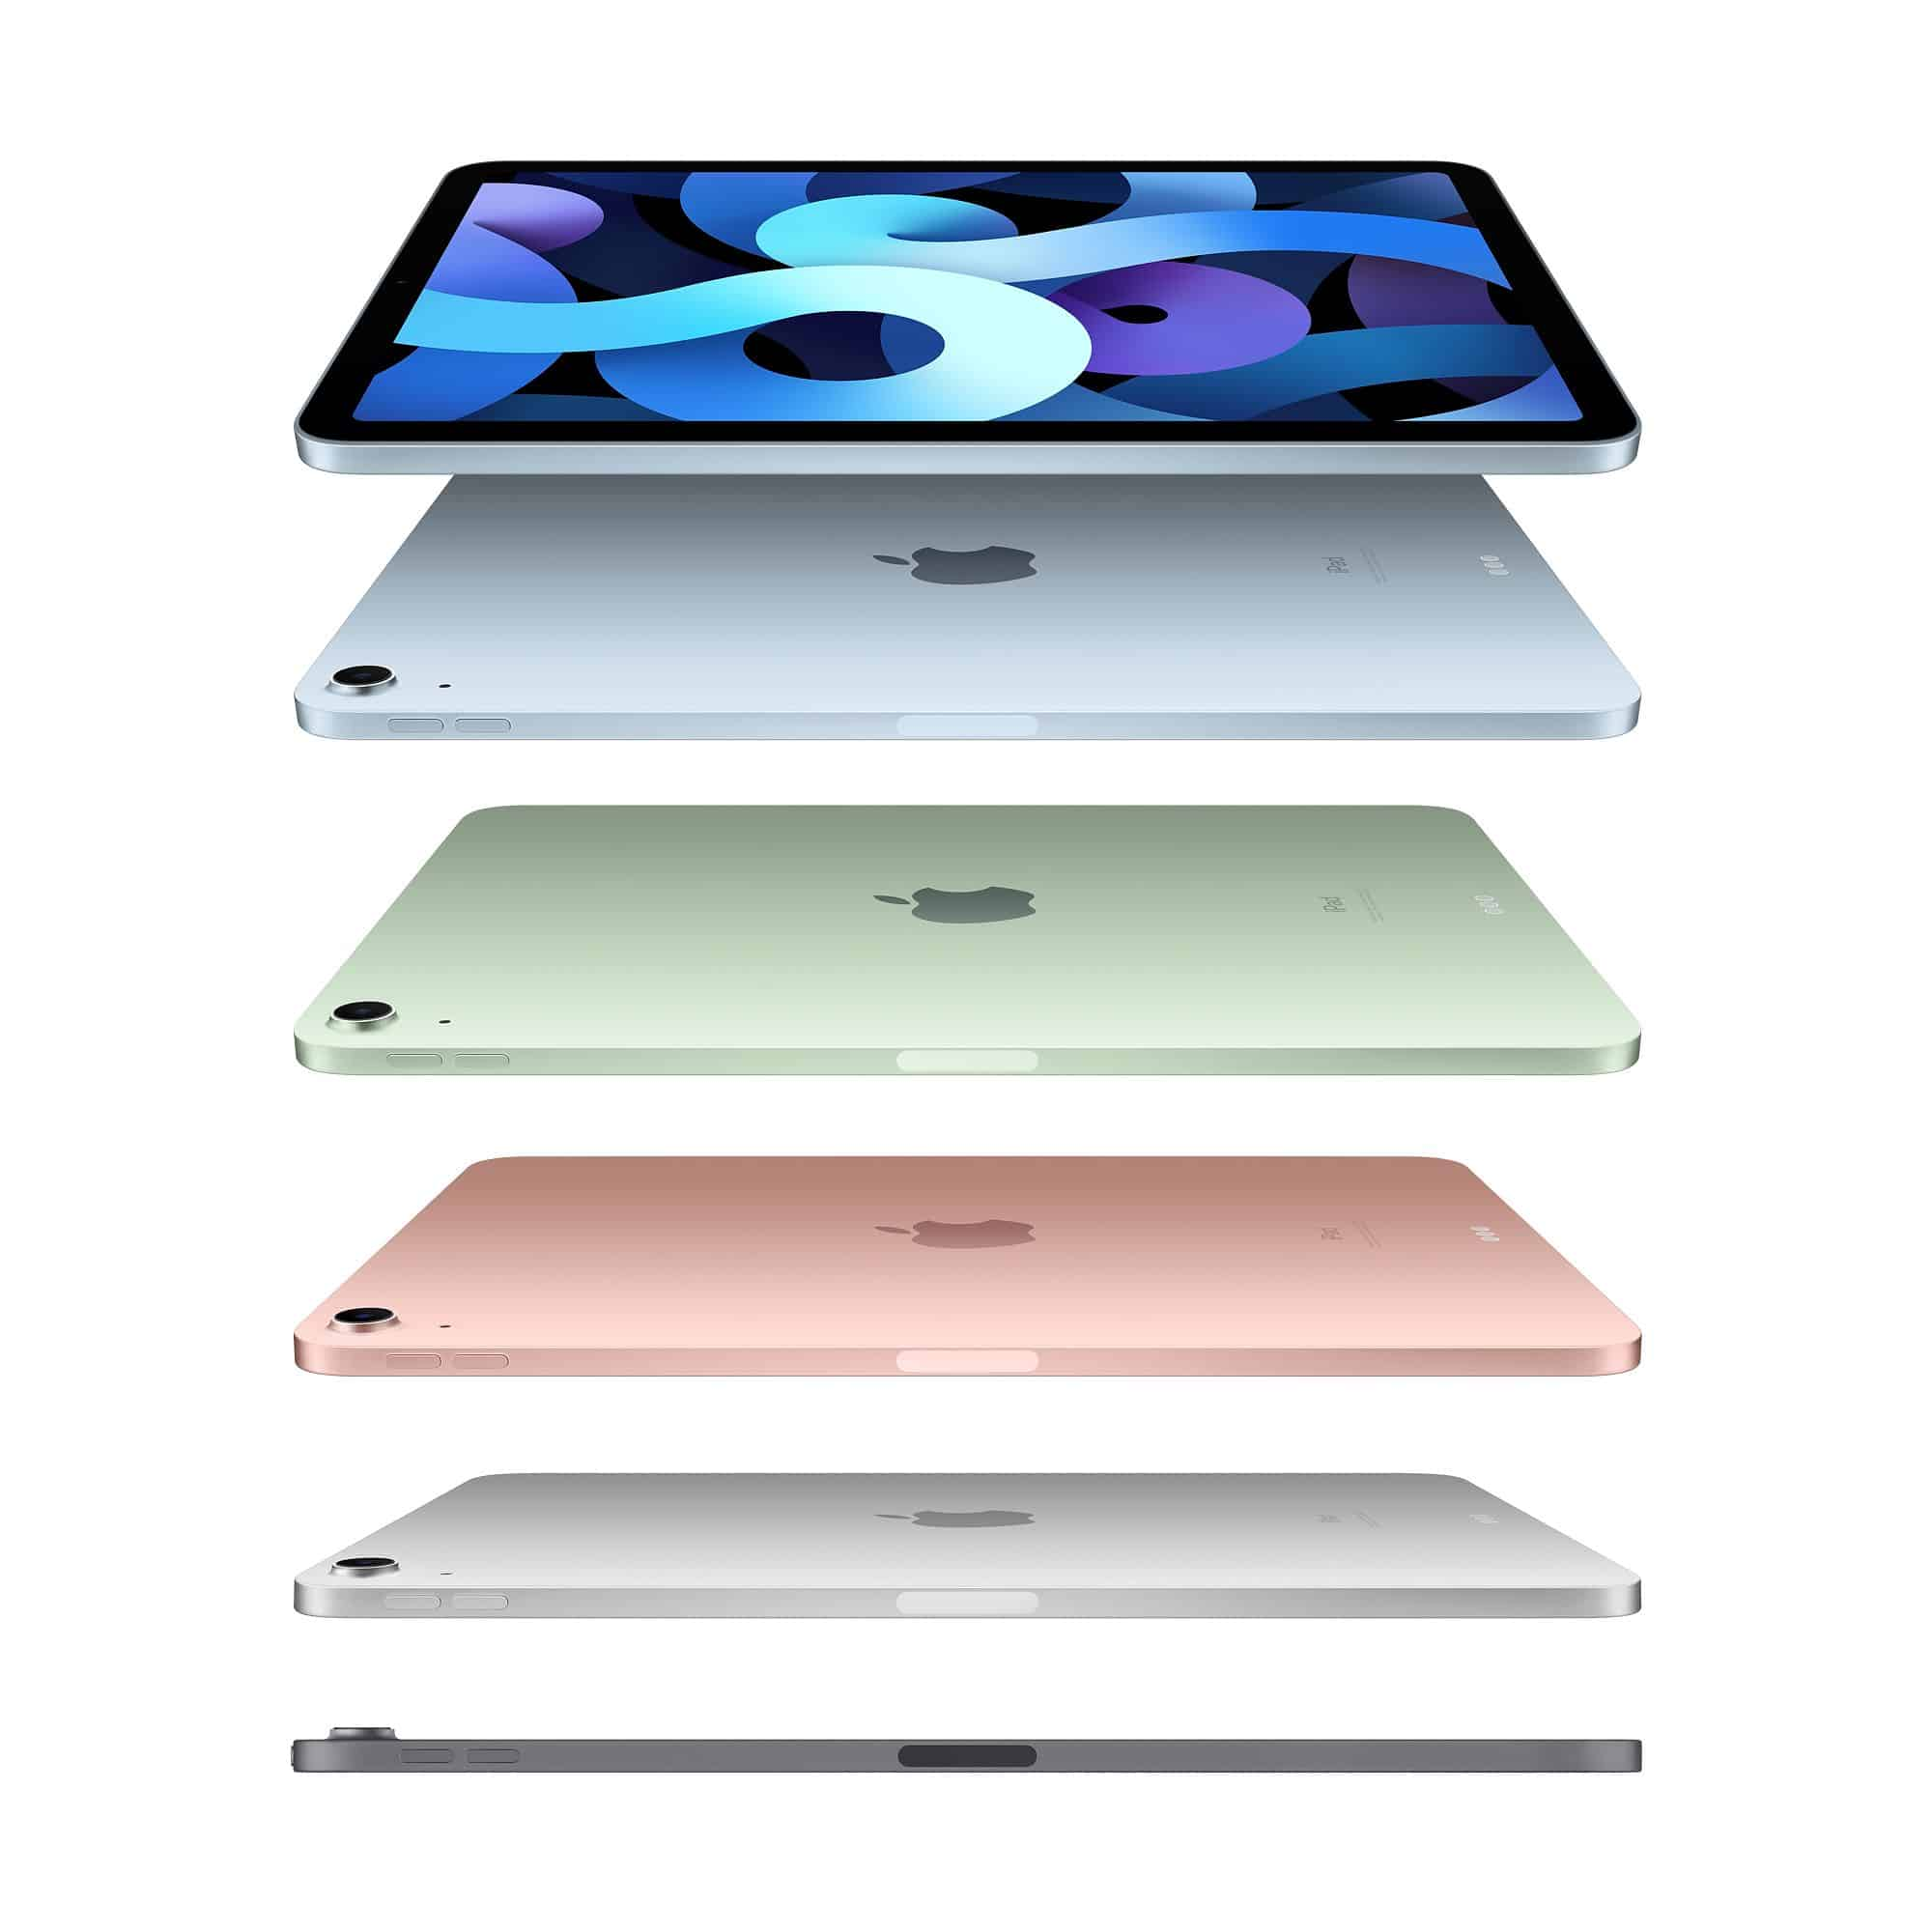 http://server.digimetriq.com/wp-content/uploads/2021/01/1610649960_902_Which-iPad-Should-I-Buy-Which-is-the-Best.jpg